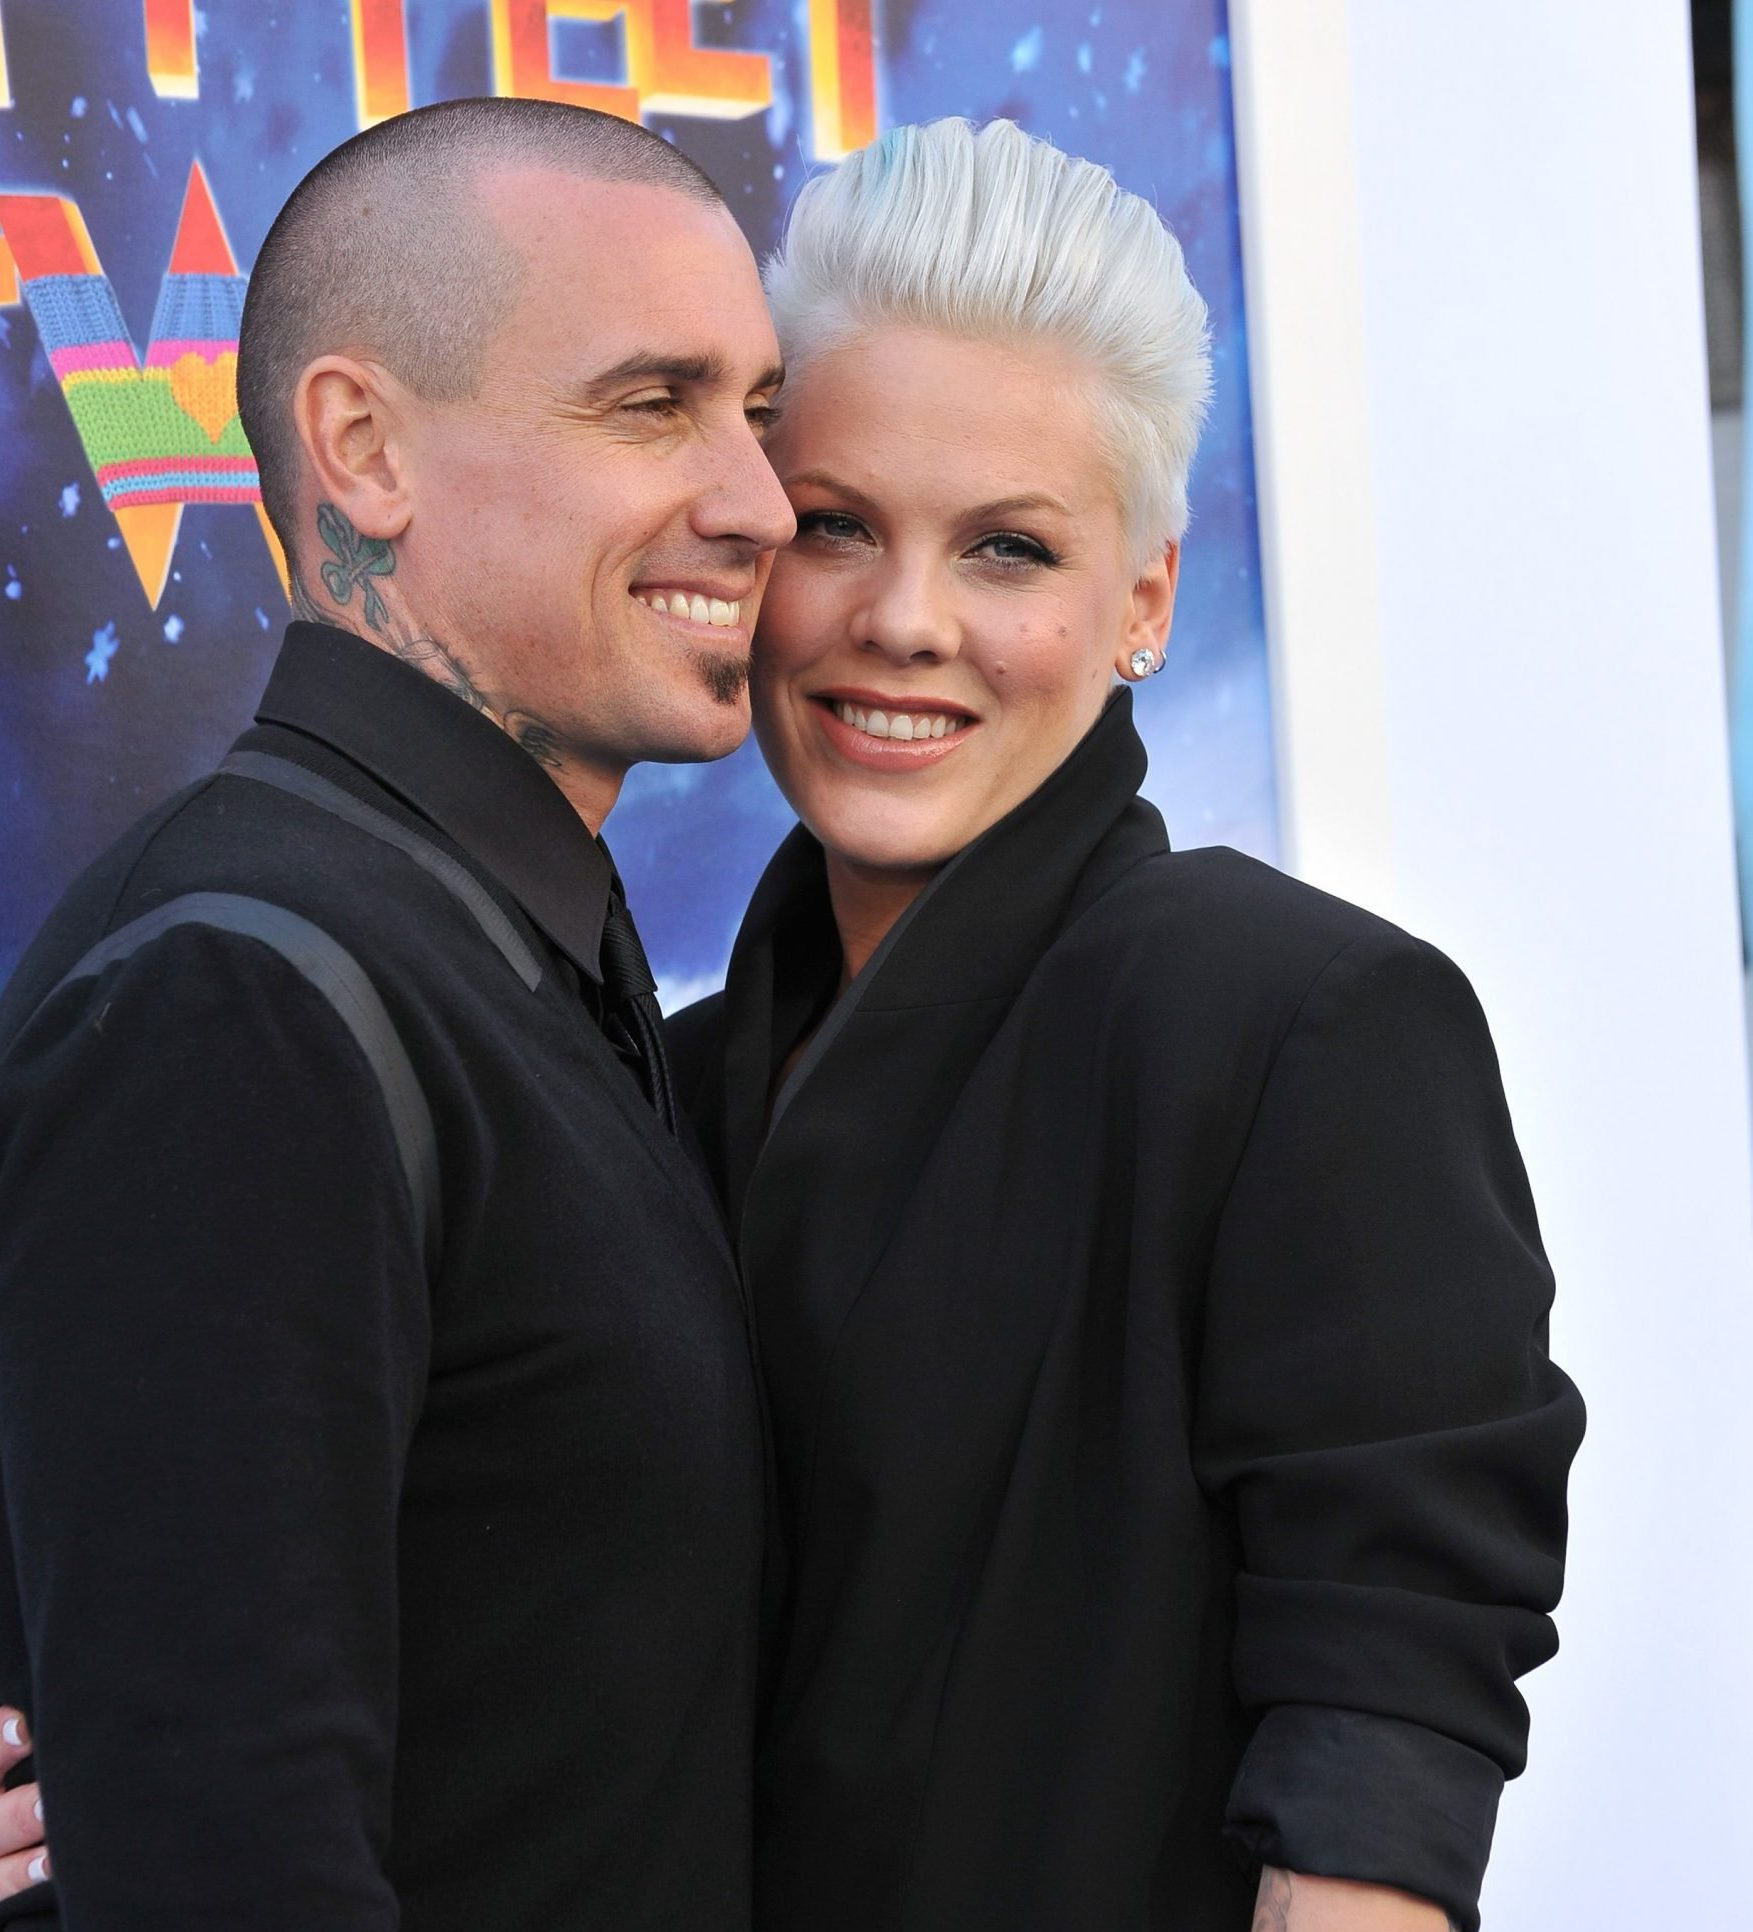 Carey Hart and Pink pose at a red carpet event. They stand close to each other and are both dressed in black, smiling.